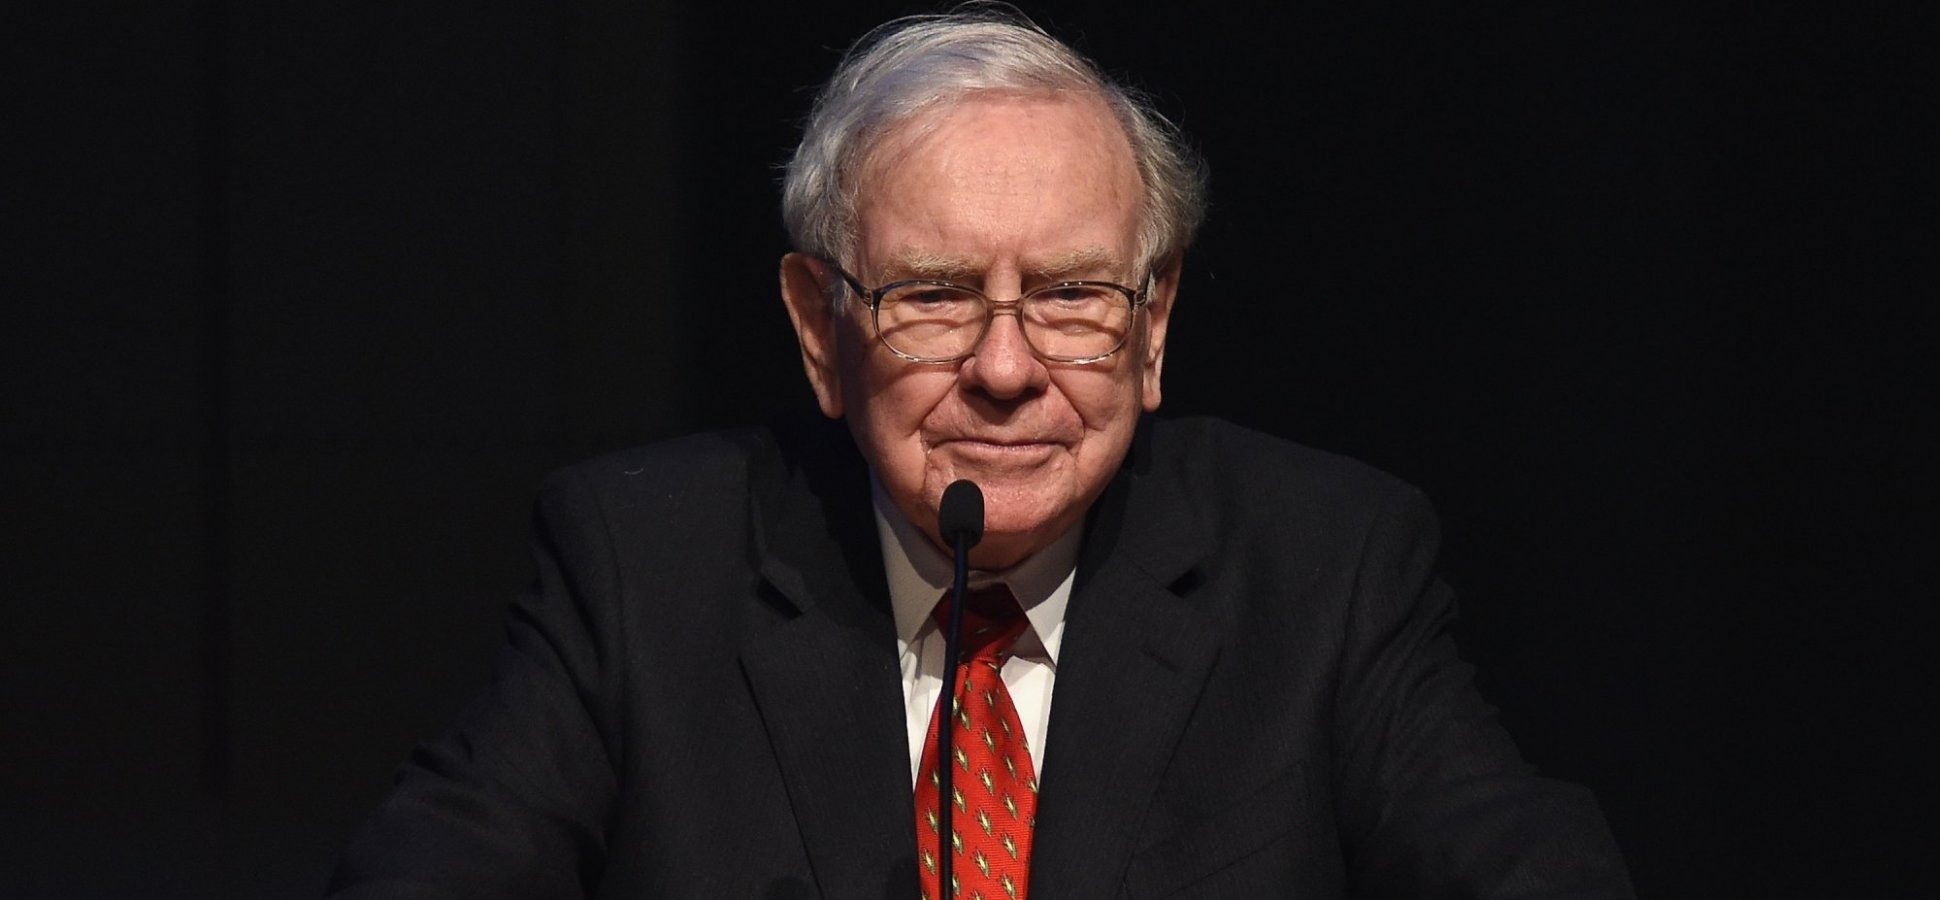 Warren Buffett Says Look for This 1 Trait if You Want to Hire the Best People